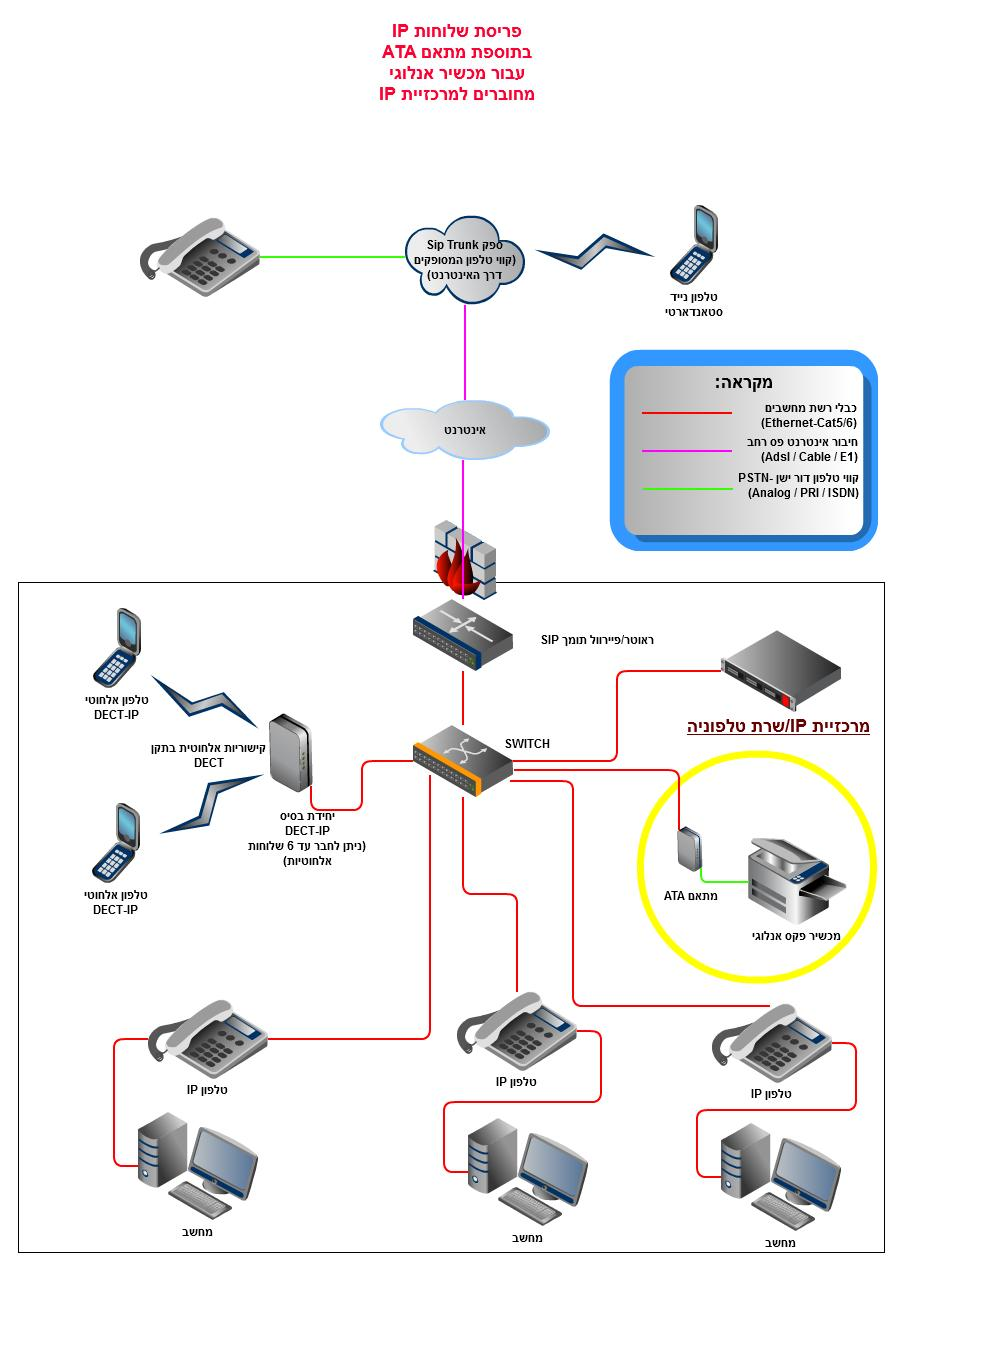 ip-pbx_connected_to_sip_extensions_with_1_ata_adap